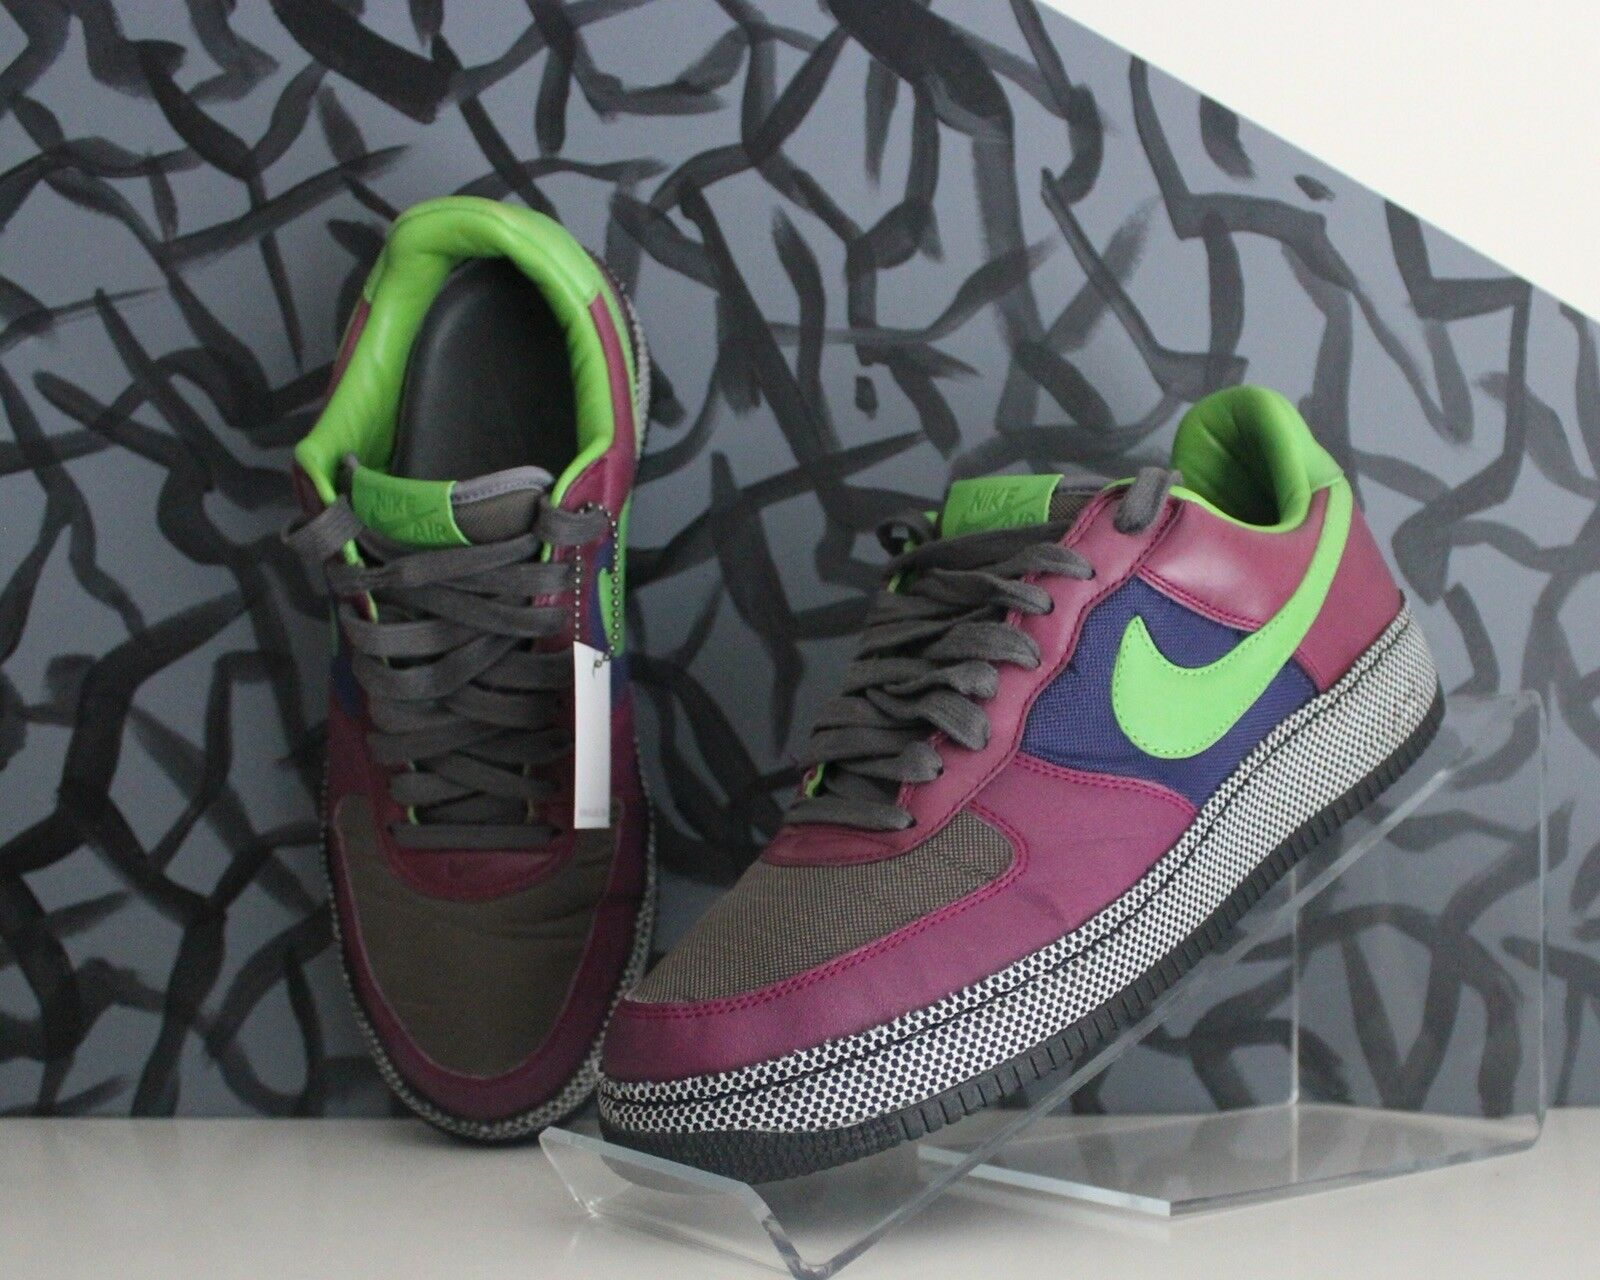 Nike Air Force One Insideout Rare Classic Green Checkered Uptown Streetwear M 10